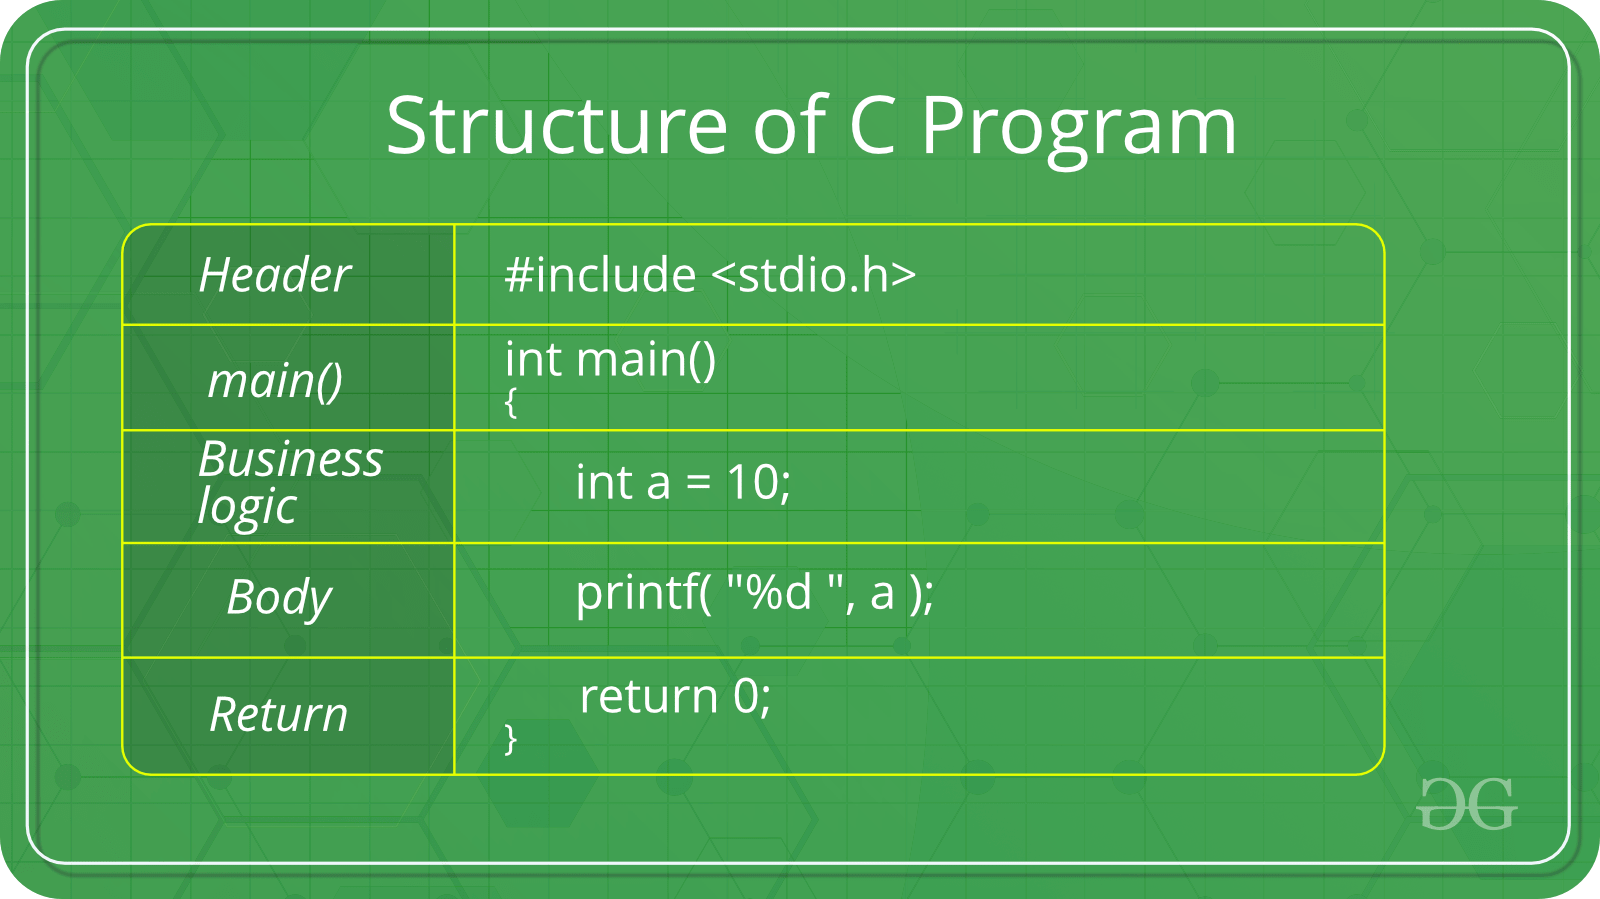 hight resolution of the structure of a c program is as follows